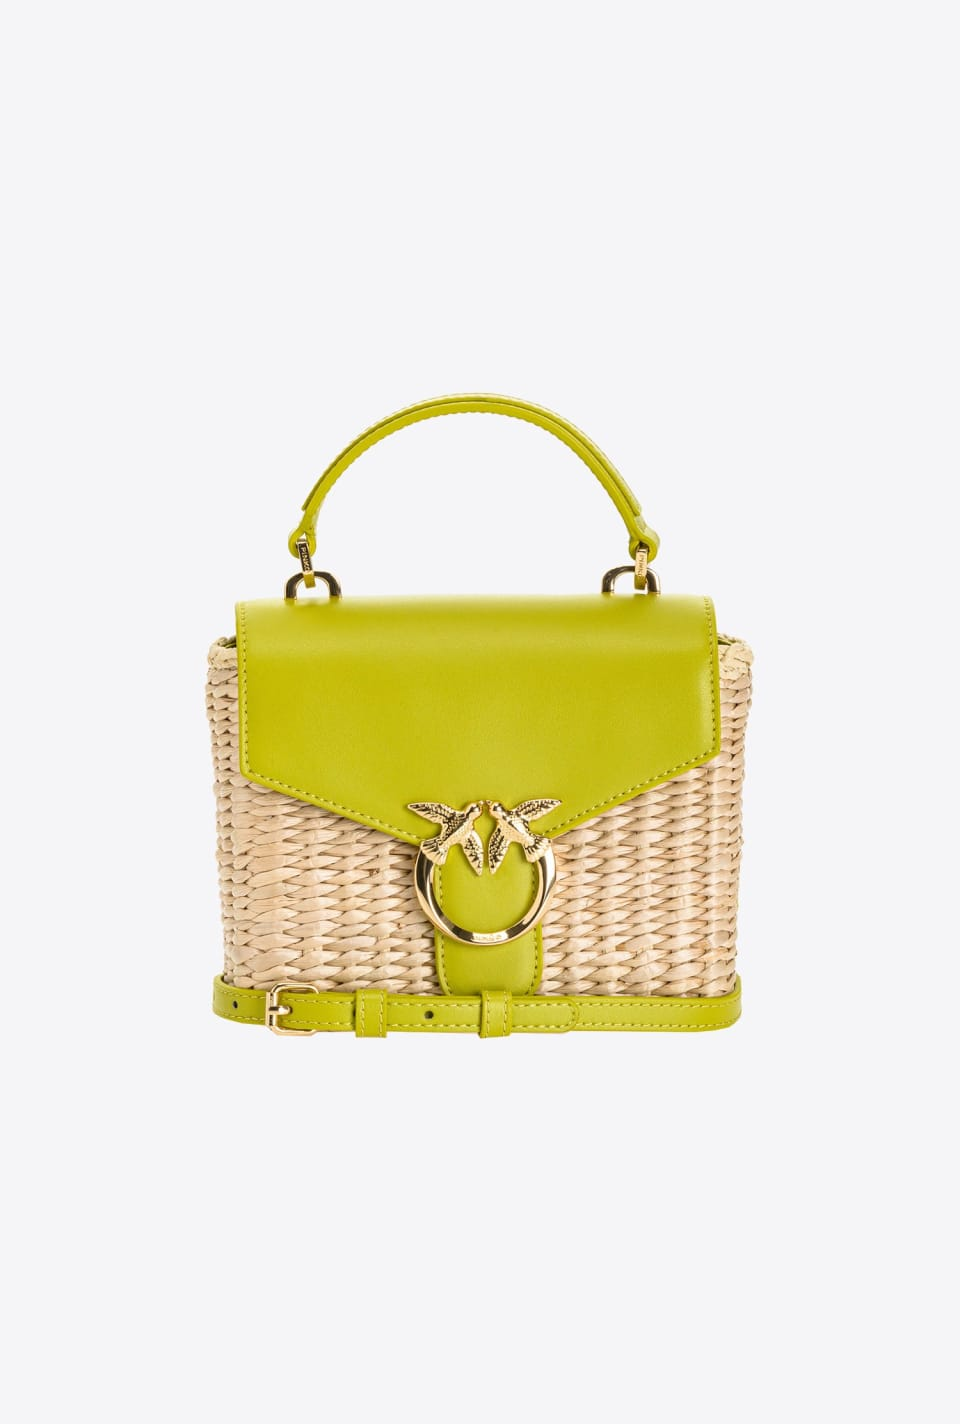 Mini Love Bag Top Handle Midollino - Pinko